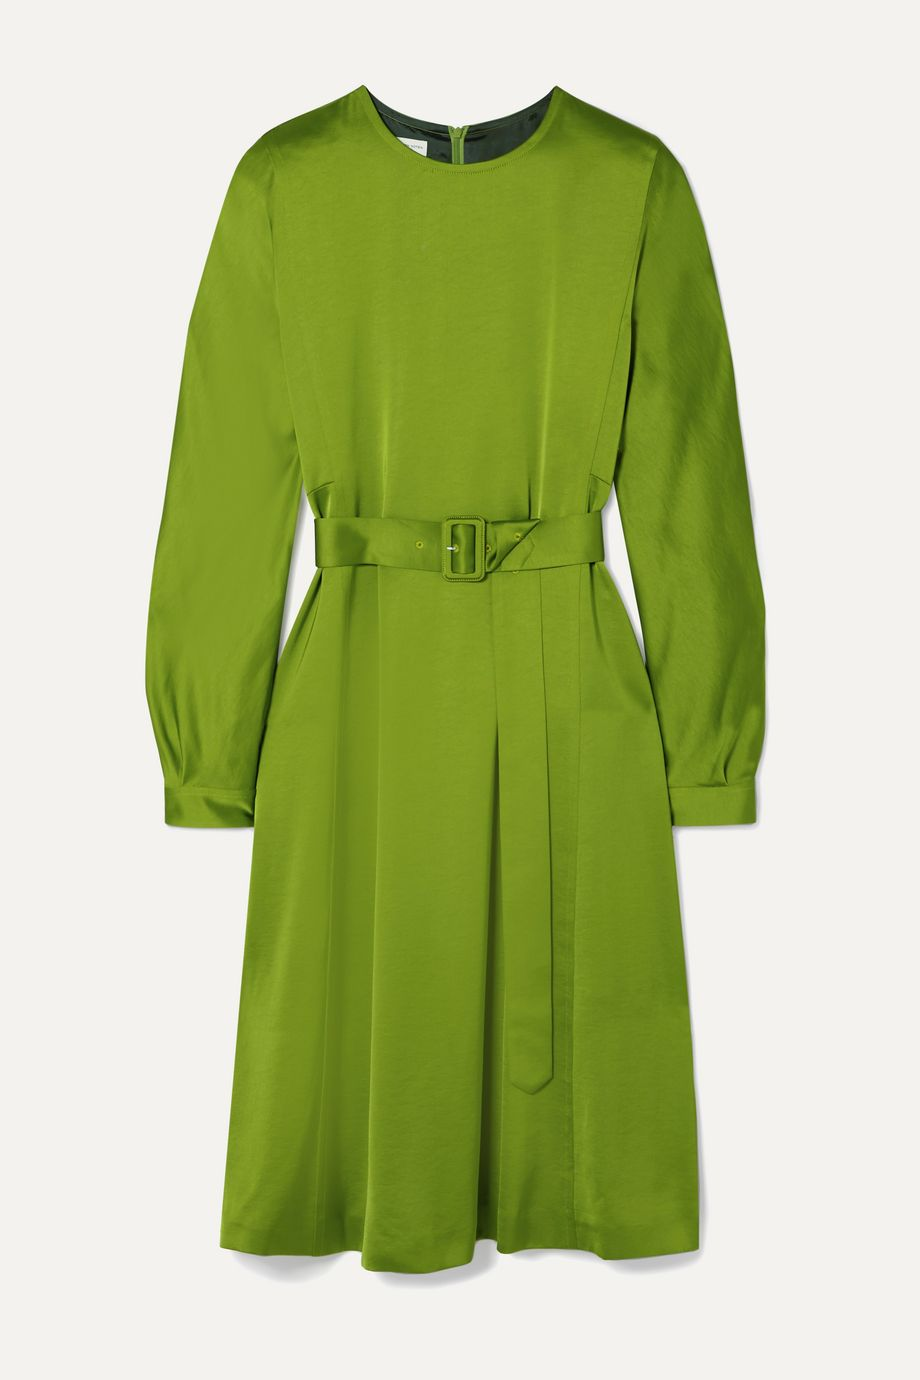 Dries Van Noten Dicina belted satin midi dress